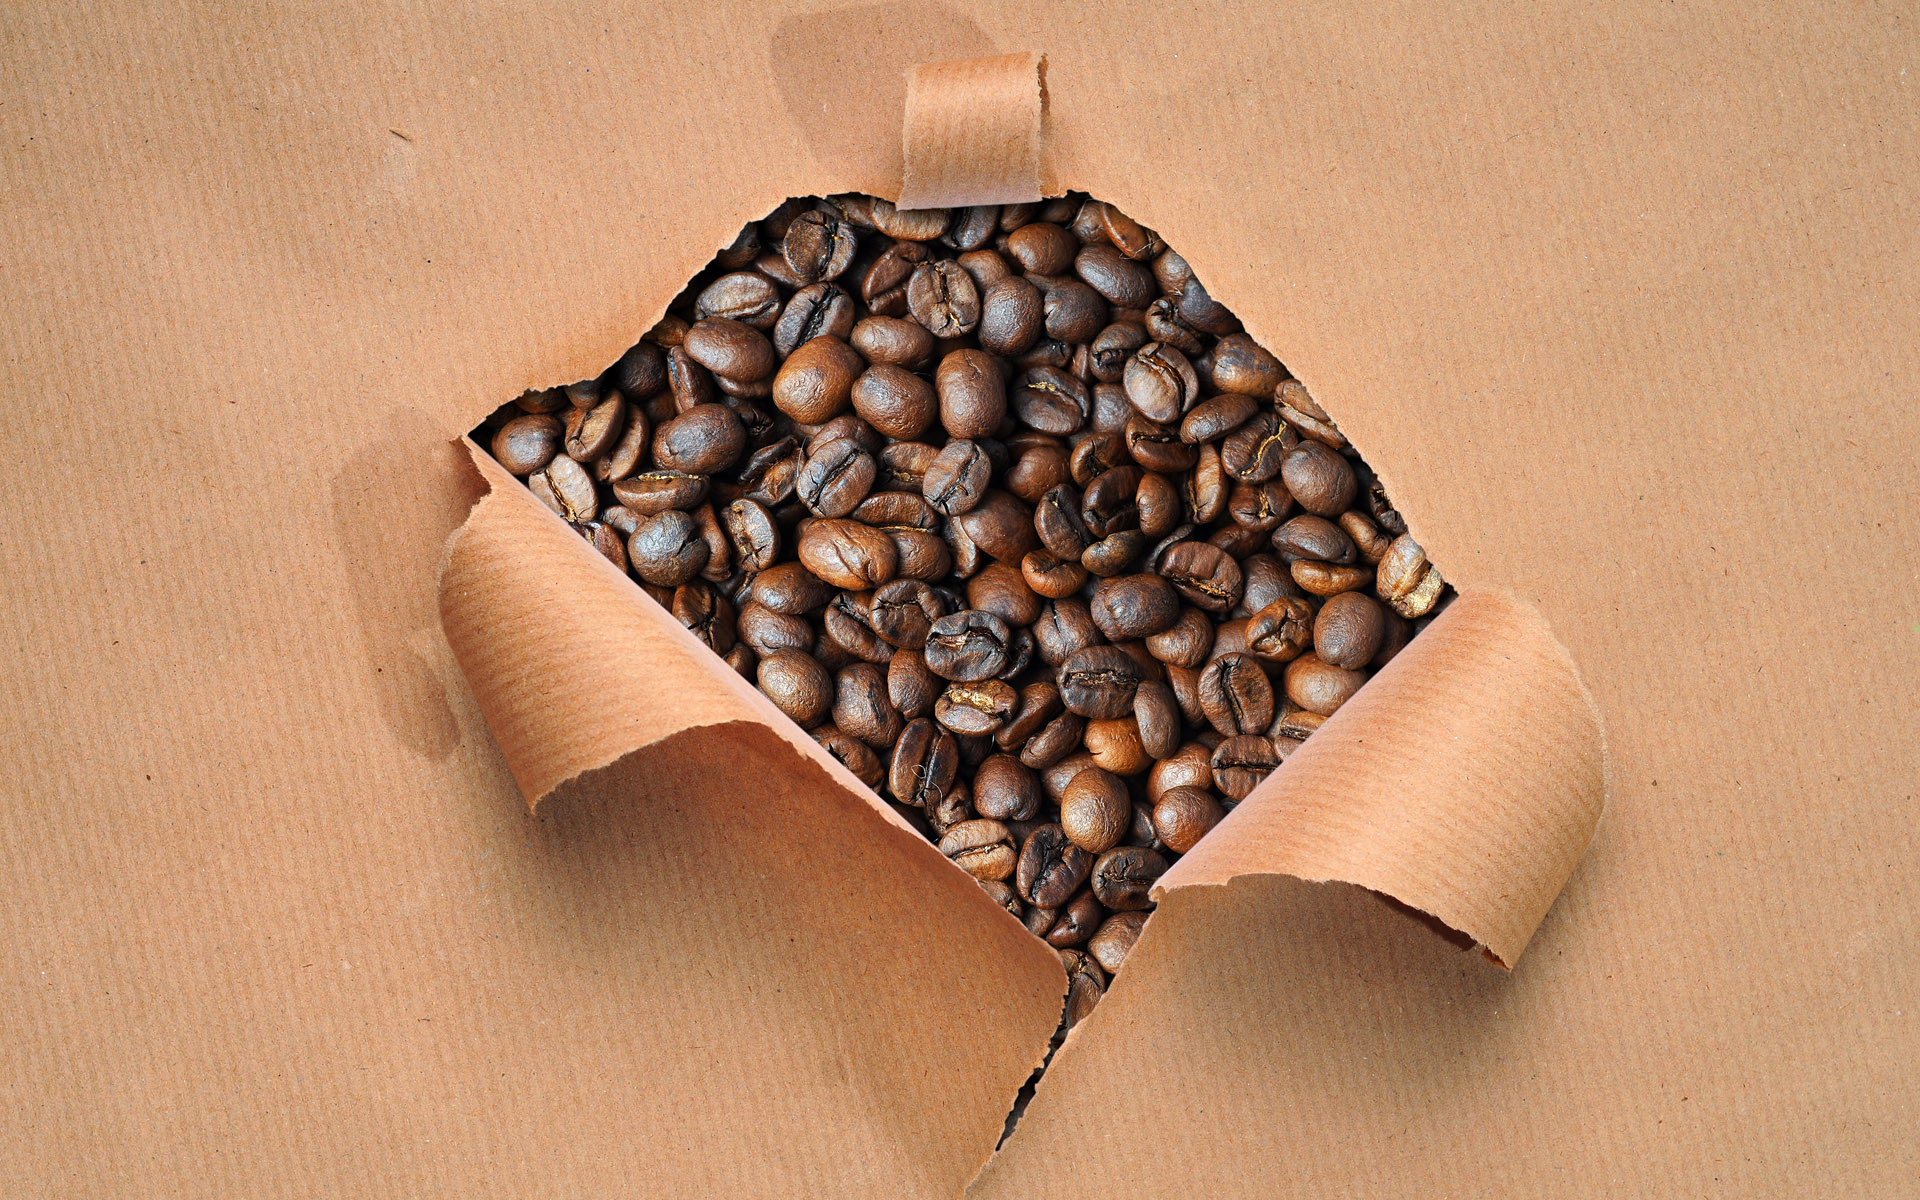 Coffee and coffee beans close-up 15045